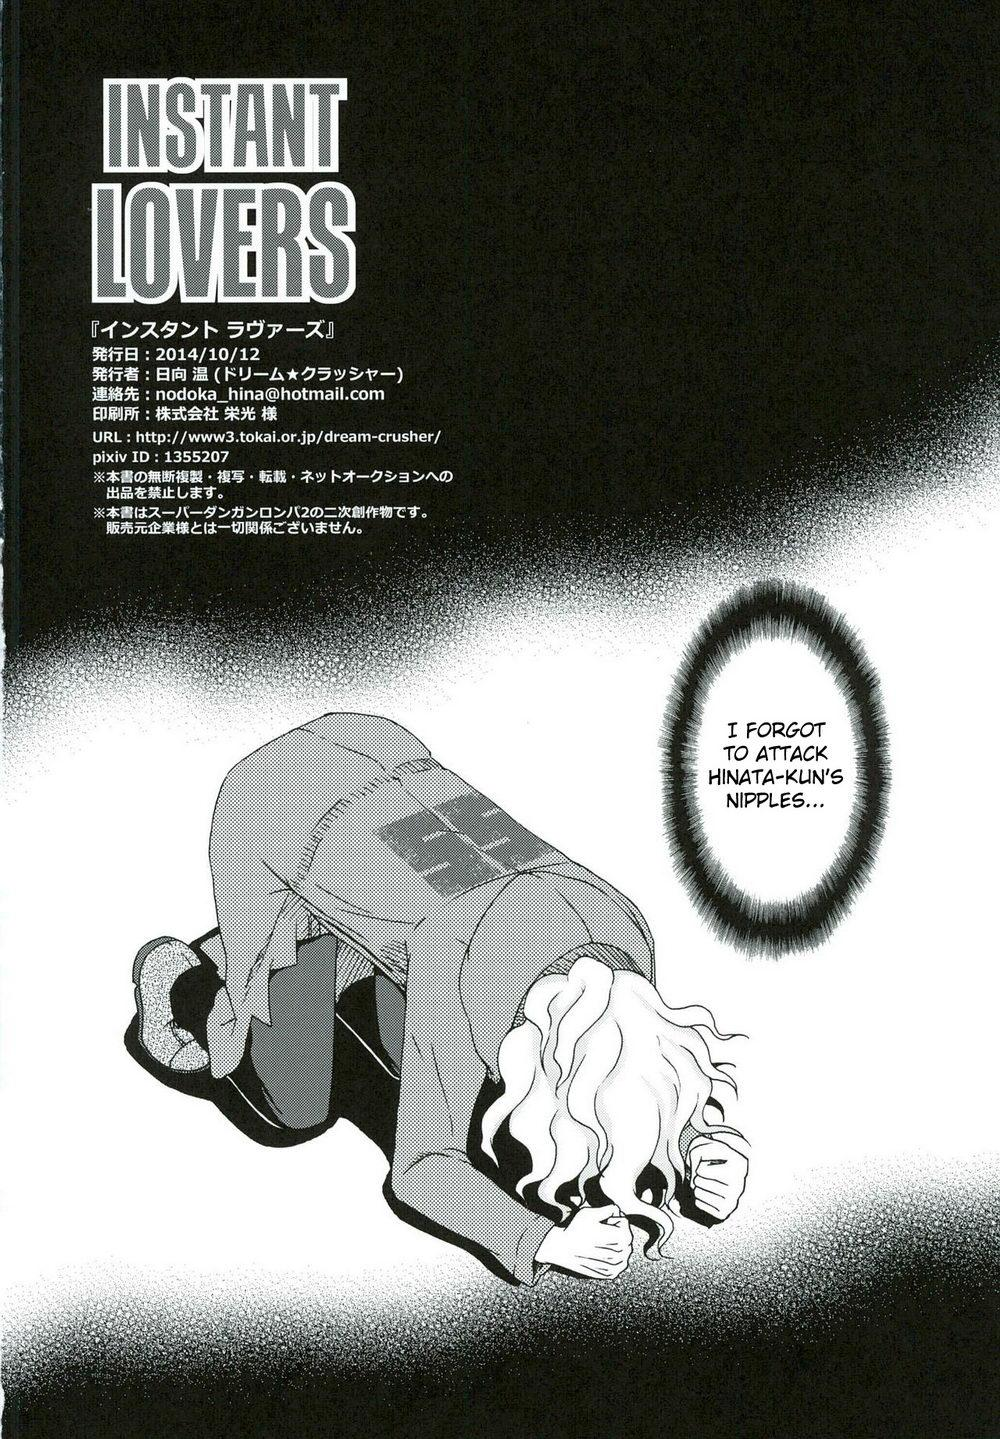 INSTANT LOVERS 33